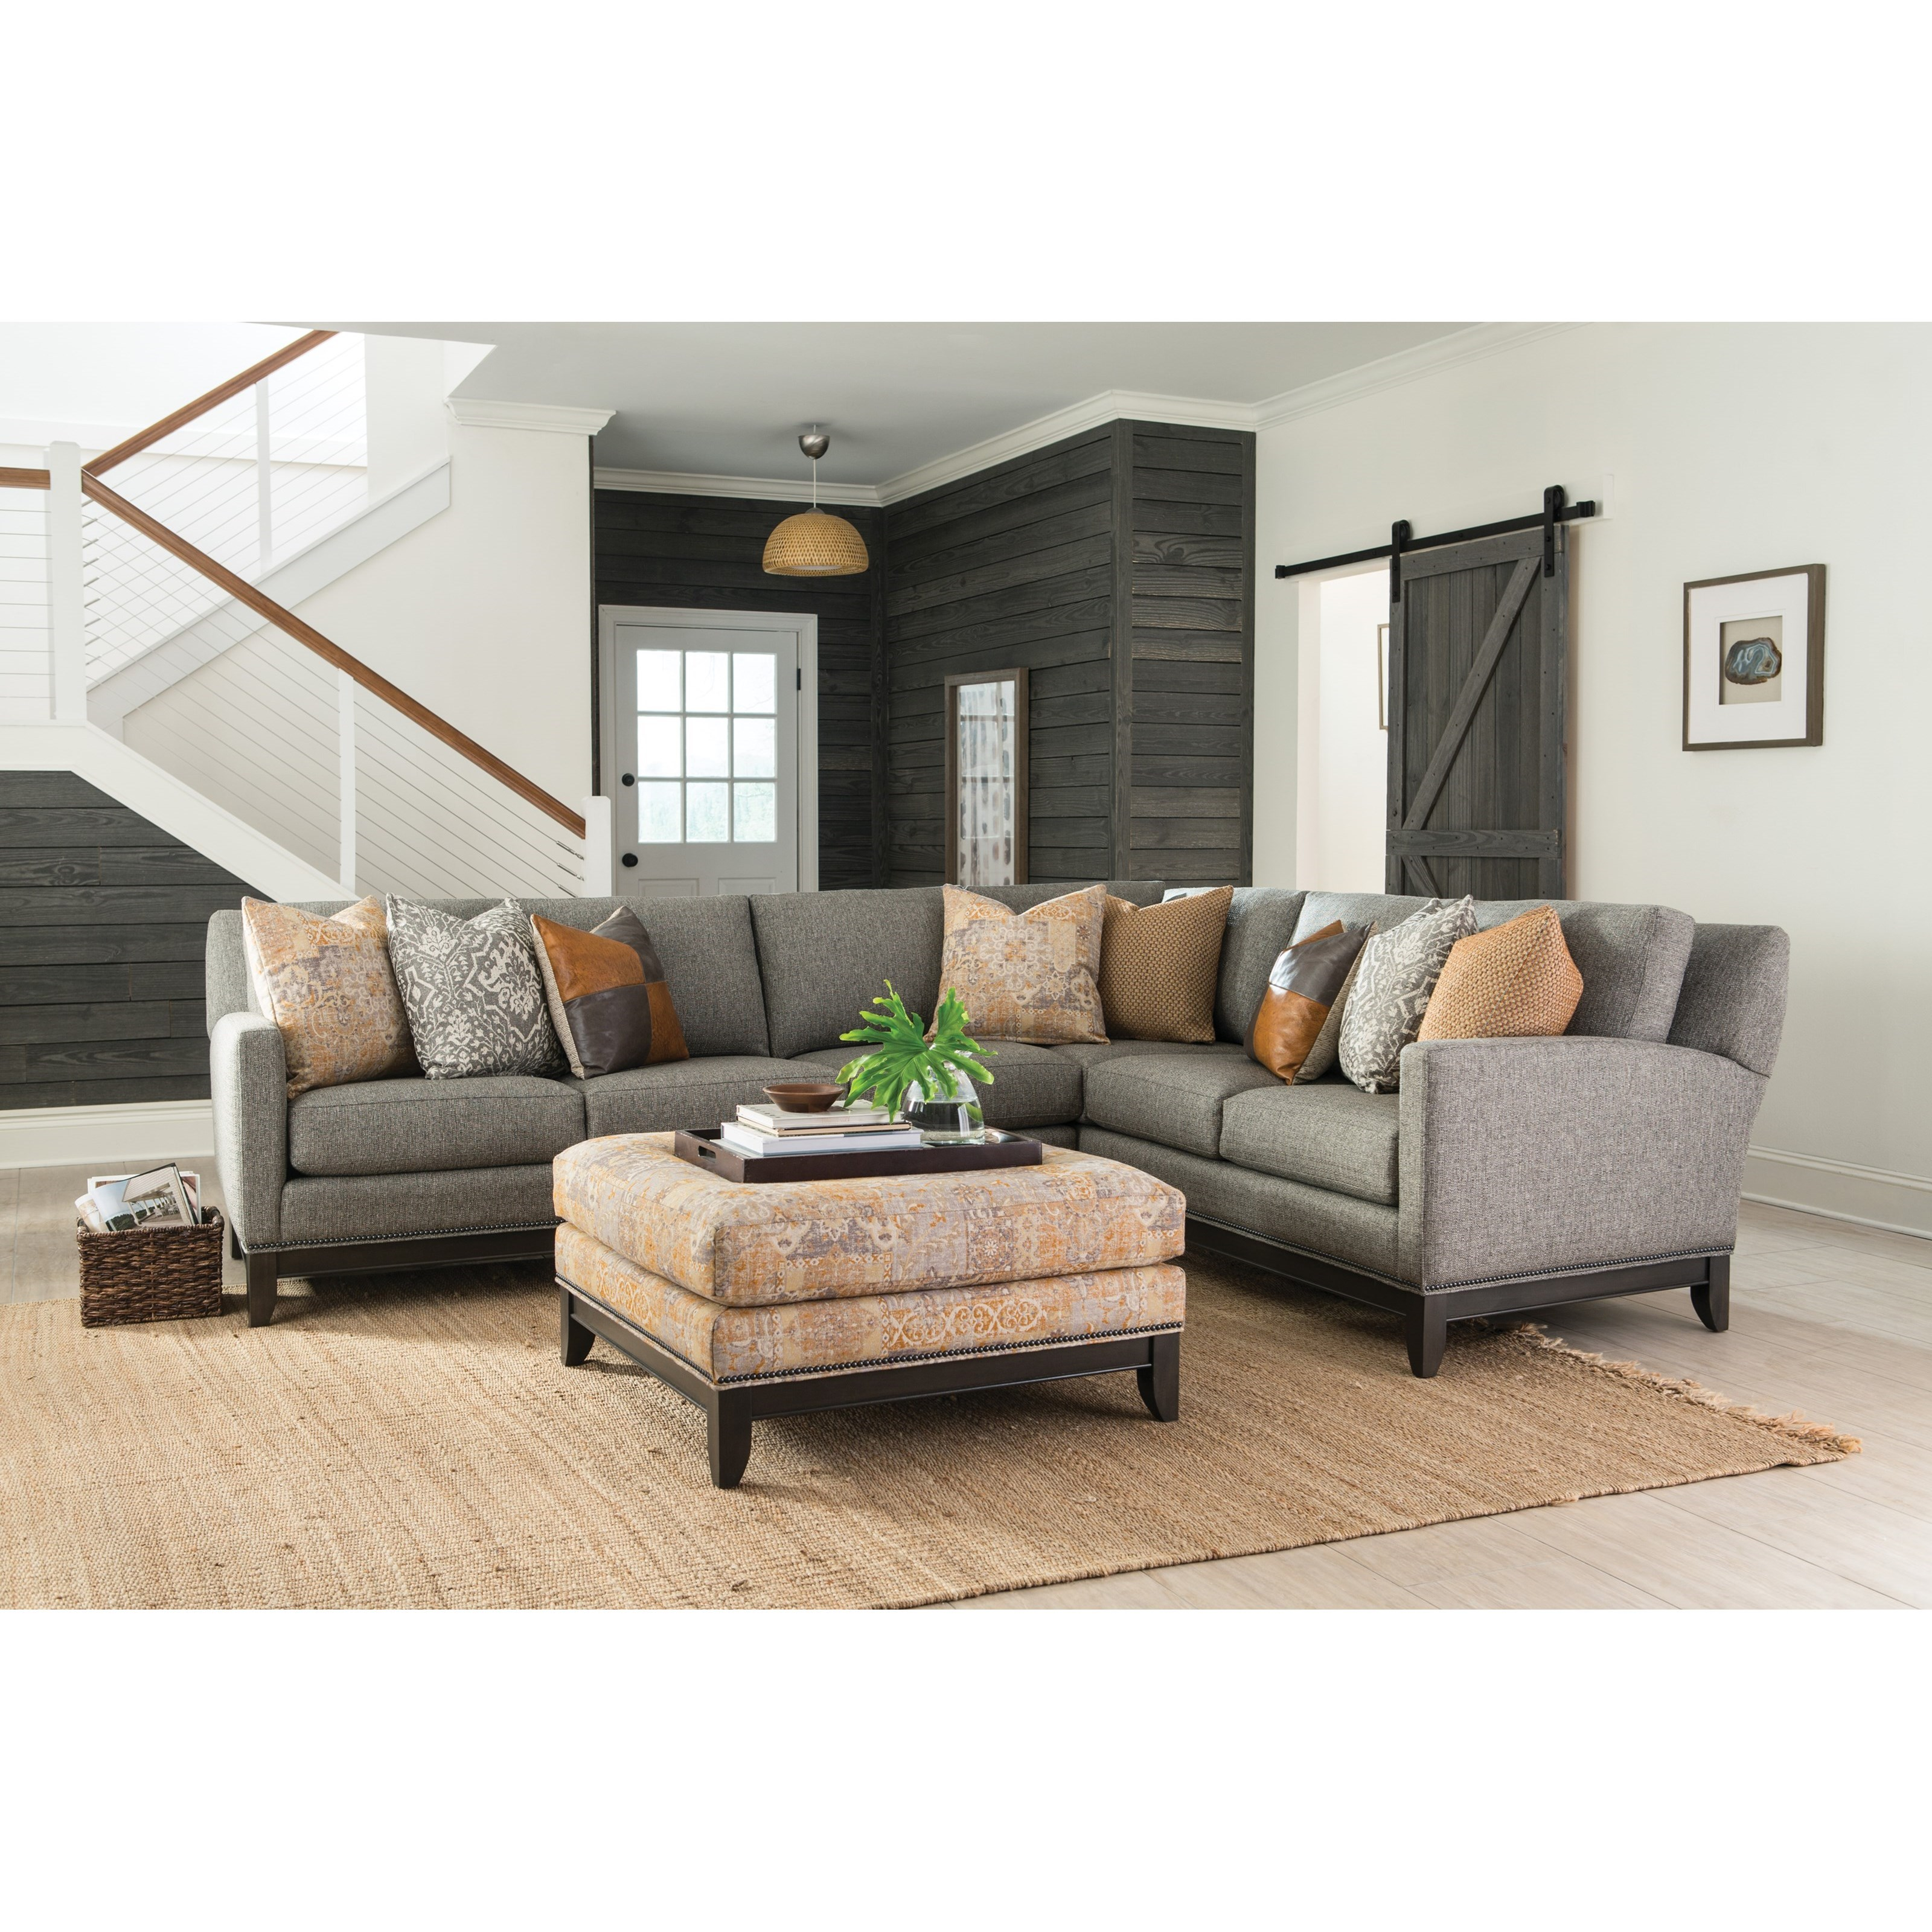 238 Stationary Living Room Group by Smith Brothers at Rooms for Less